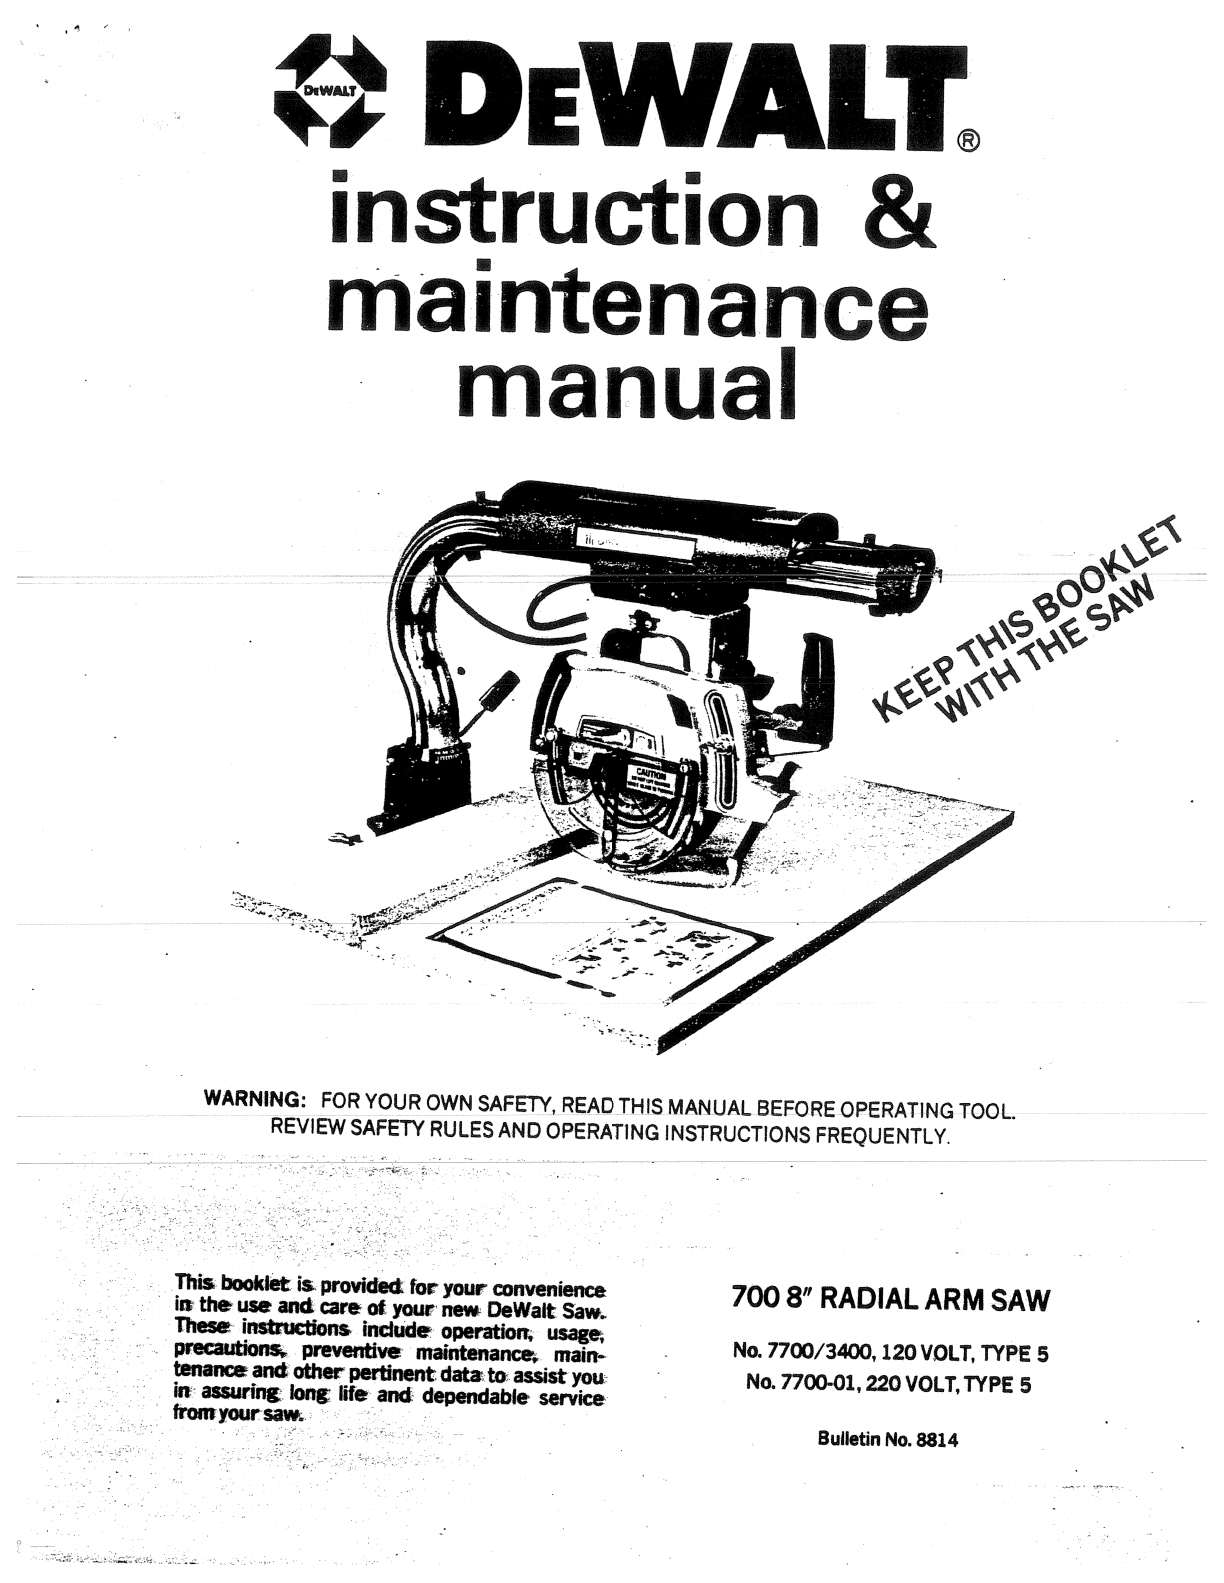 Dewalt Radial Arm Saw Manual Pdf